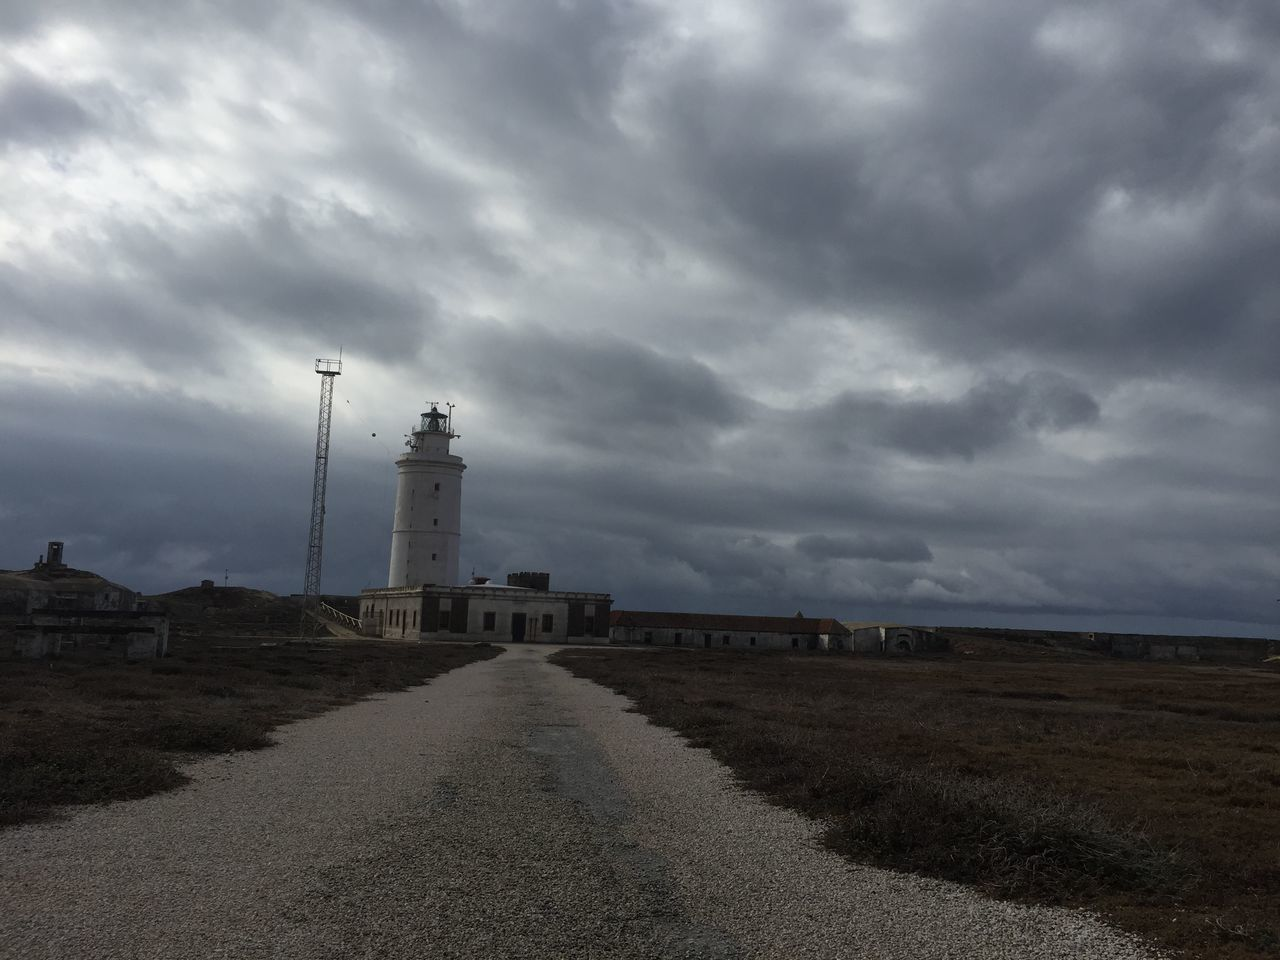 Architecture Built Structure Cloud - Sky Day Landscape Lighthouse Nature No People Outdoors Sky SPAIN Storm Cloud Travel Travel Destinations EyeEmNewHere